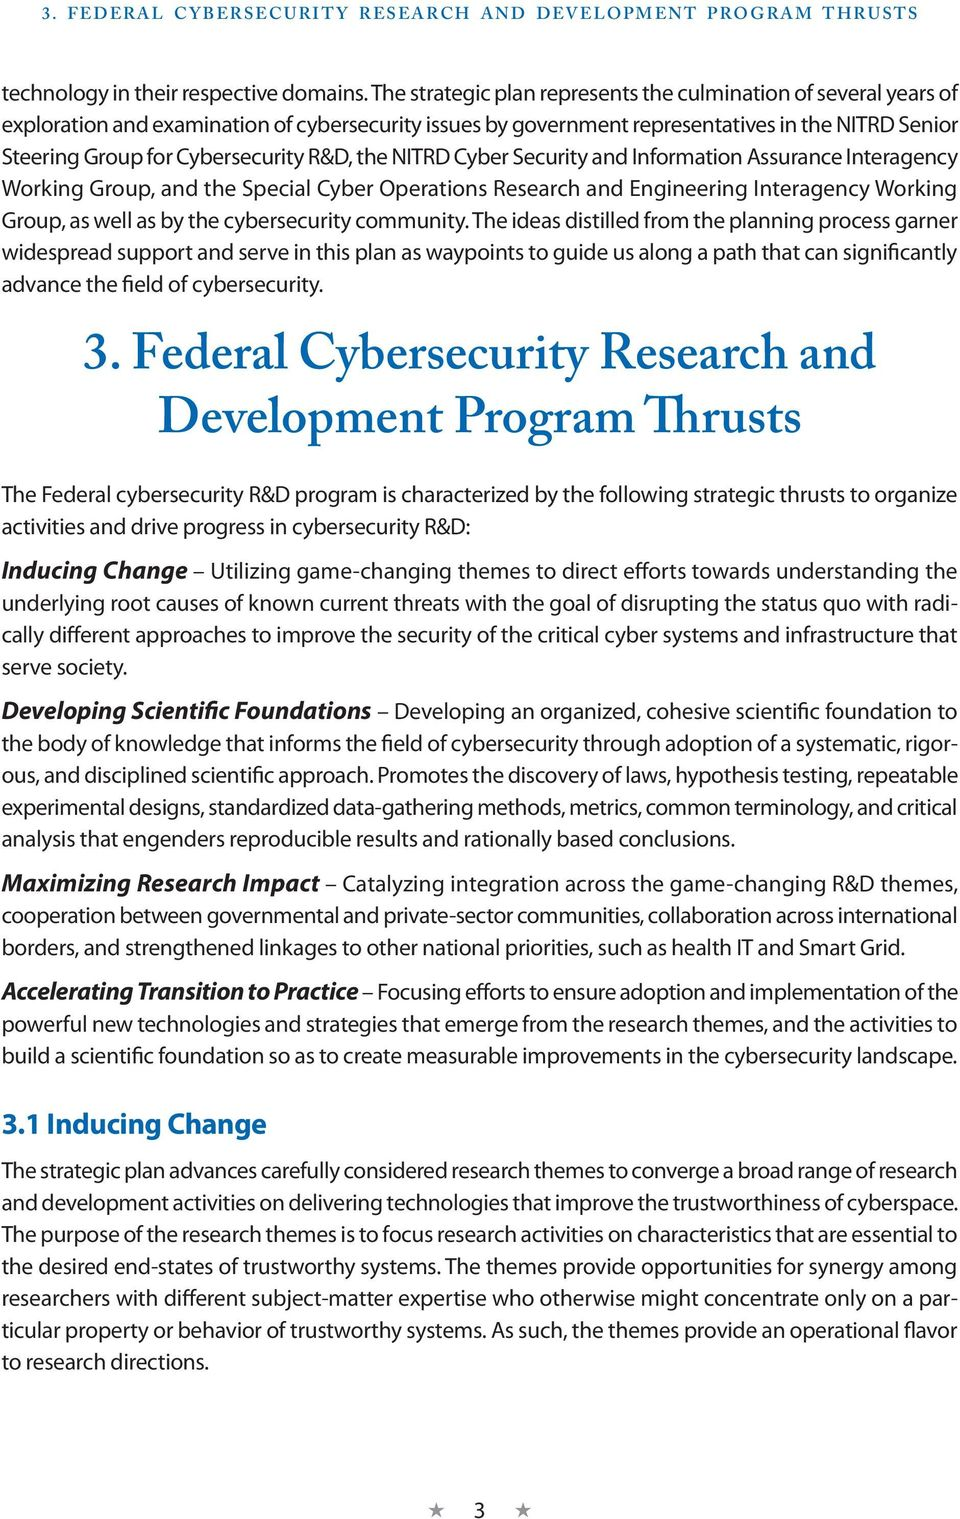 Cybersecurity R&D, the NITRD Cyber Security and Information Assurance Interagency Working Group, and the Special Cyber Operations Research and Engineering Interagency Working Group, as well as by the